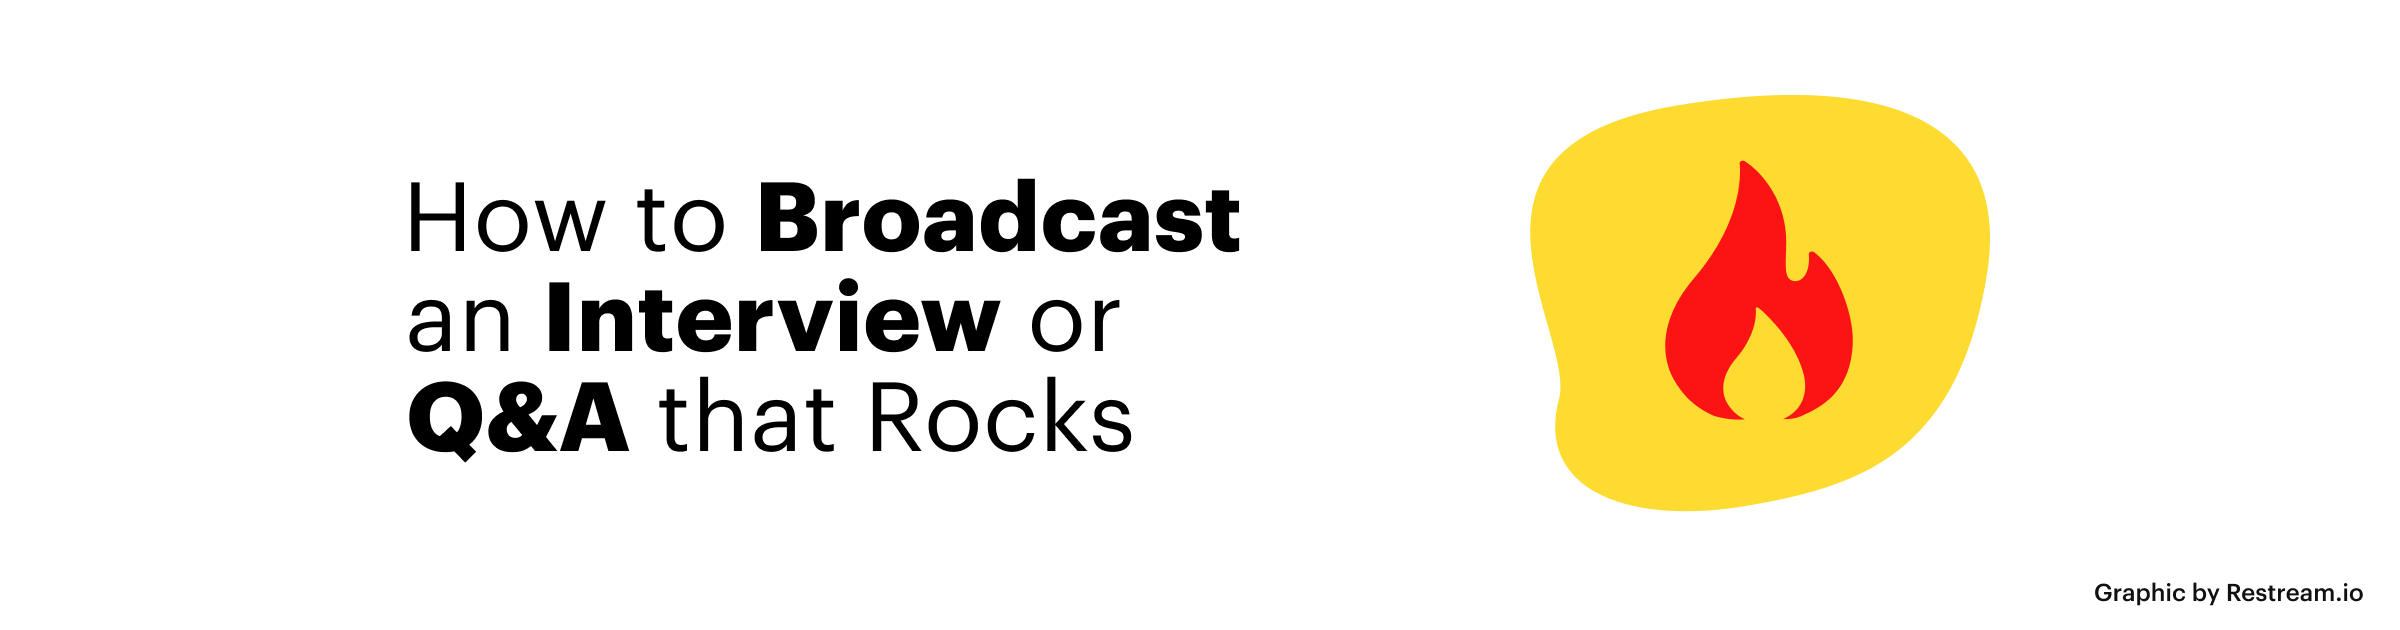 How to Broadcast an Interview or Q&A that Rocks